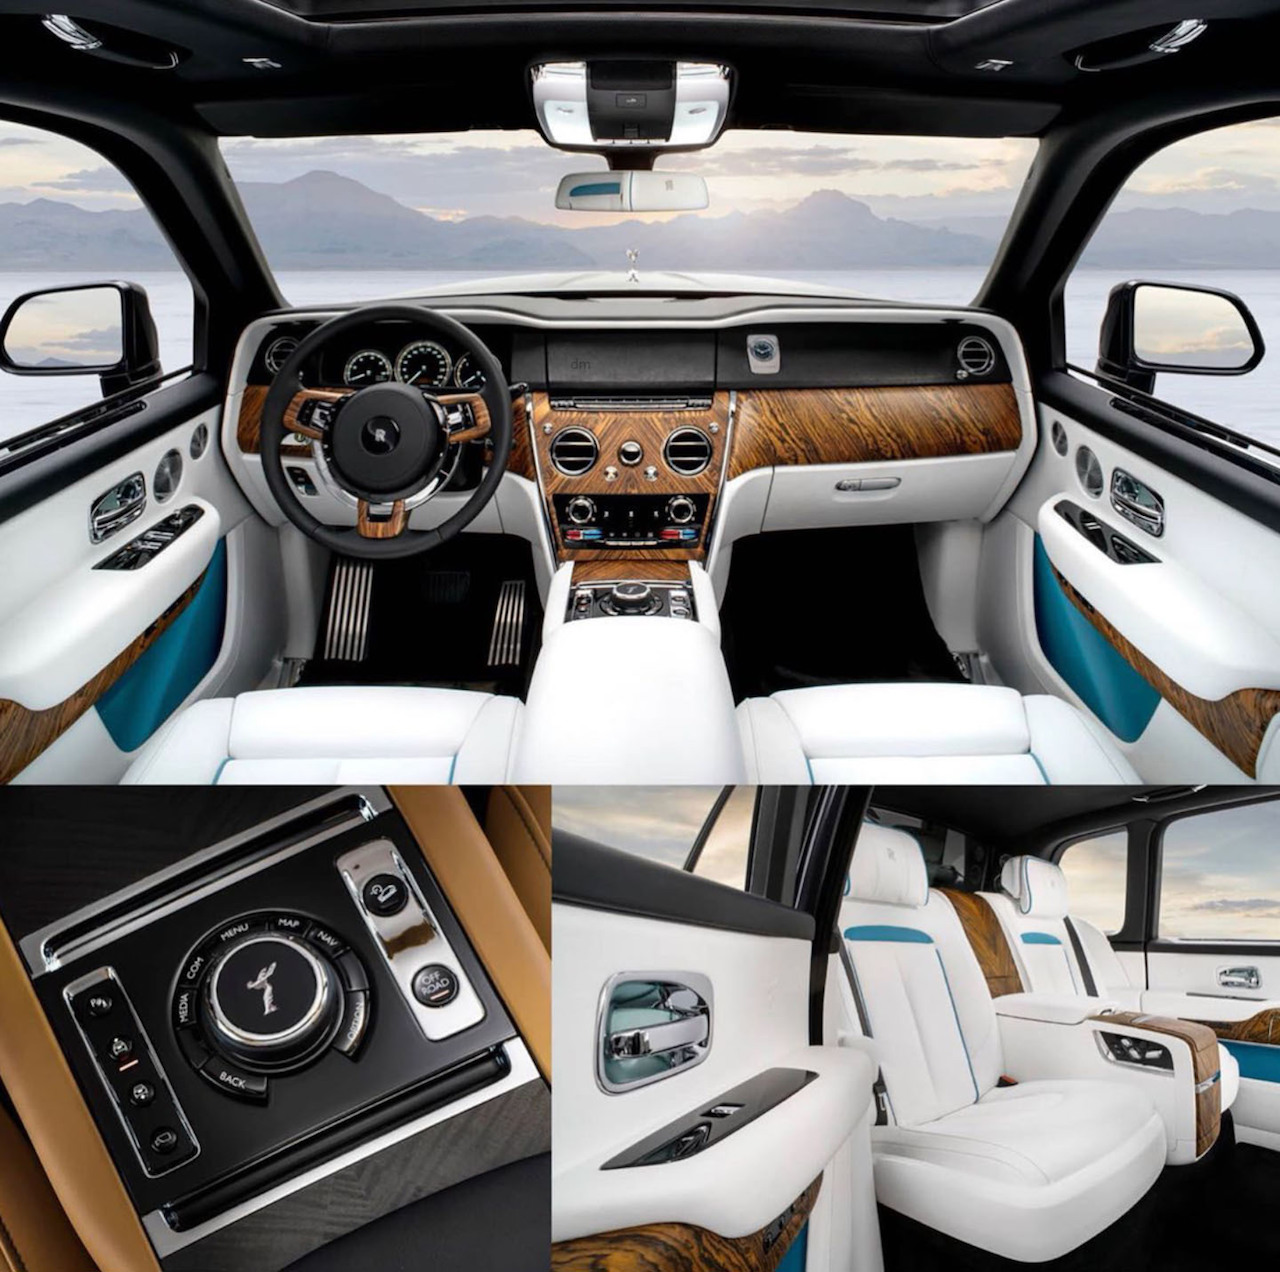 Bmw X7 Suv Price In India: Rolls-Royce Cullinan Interior Leaked Image